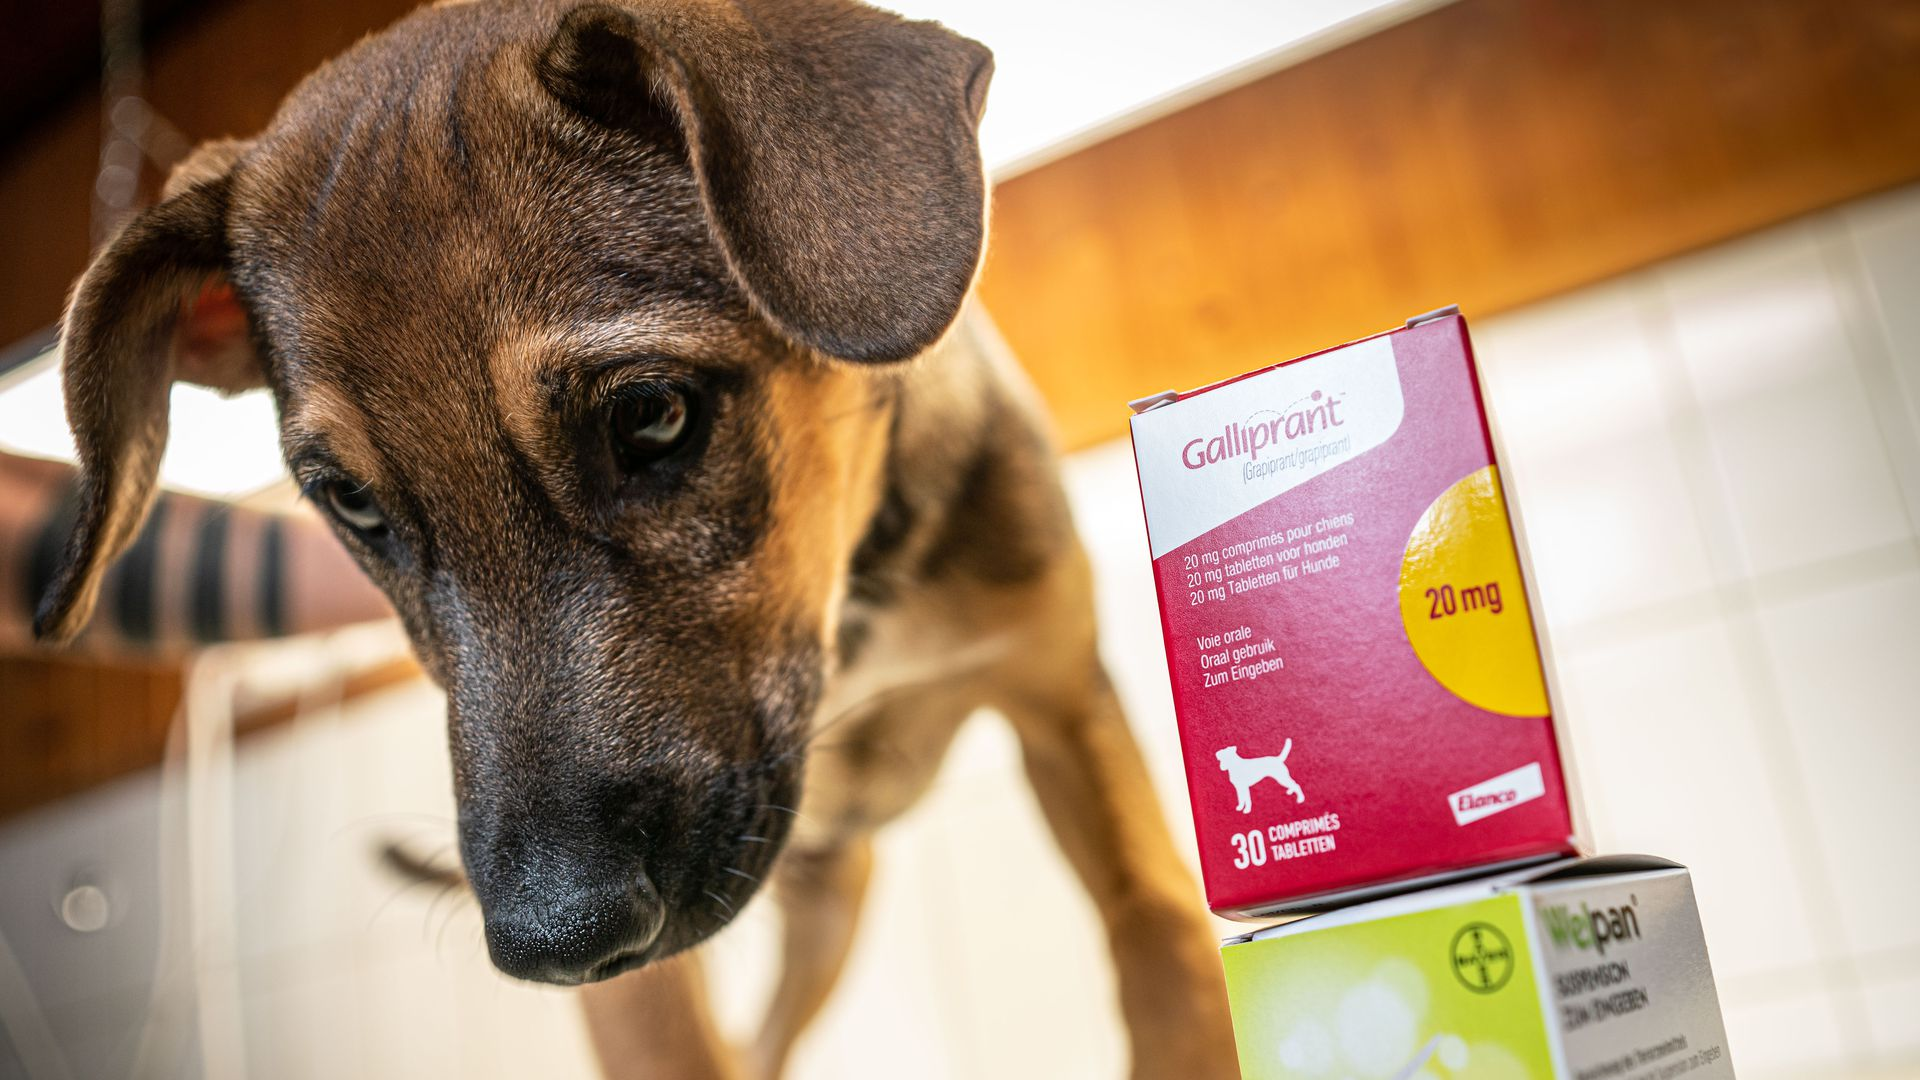 a dog standing next to animal medication produced by Elanco (top) and Bayer at a veterinary practice